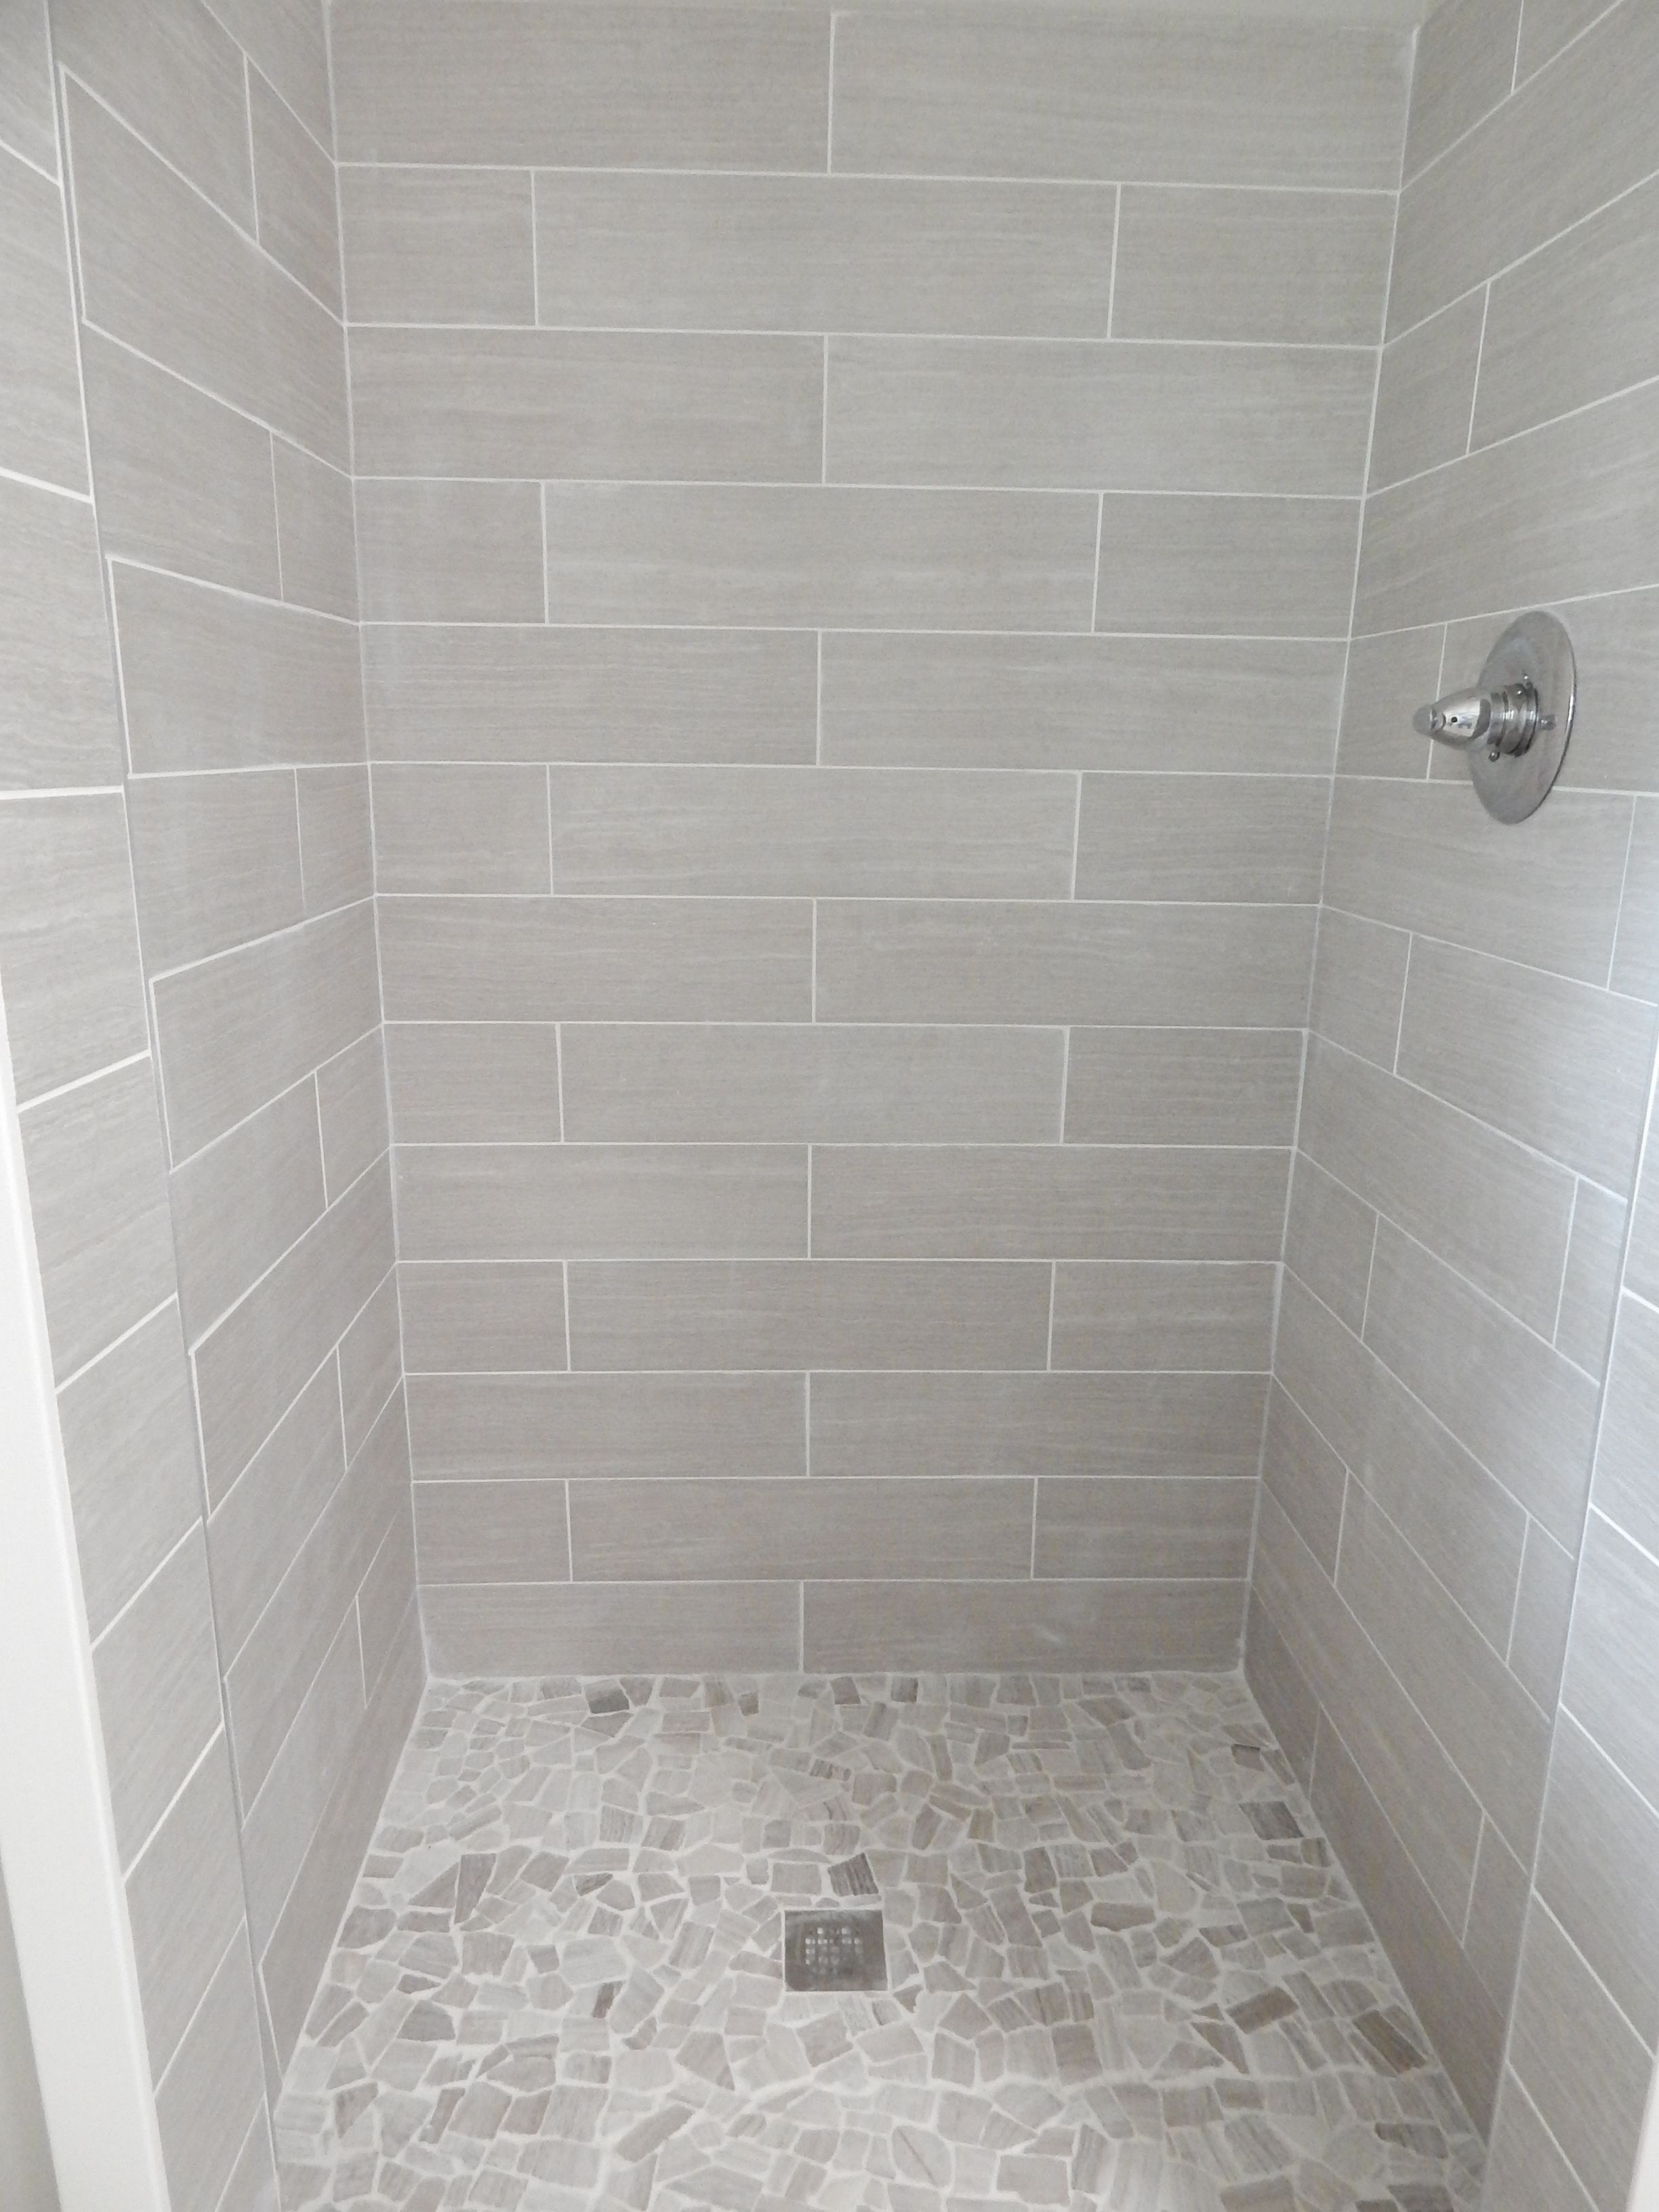 Bathroom Tile Ideas It Is Important To Have A Comfortable And Hygiene Bathroom At Home You Can Start T Bathroom Shower Tile Shower Remodel Bathrooms Remodel